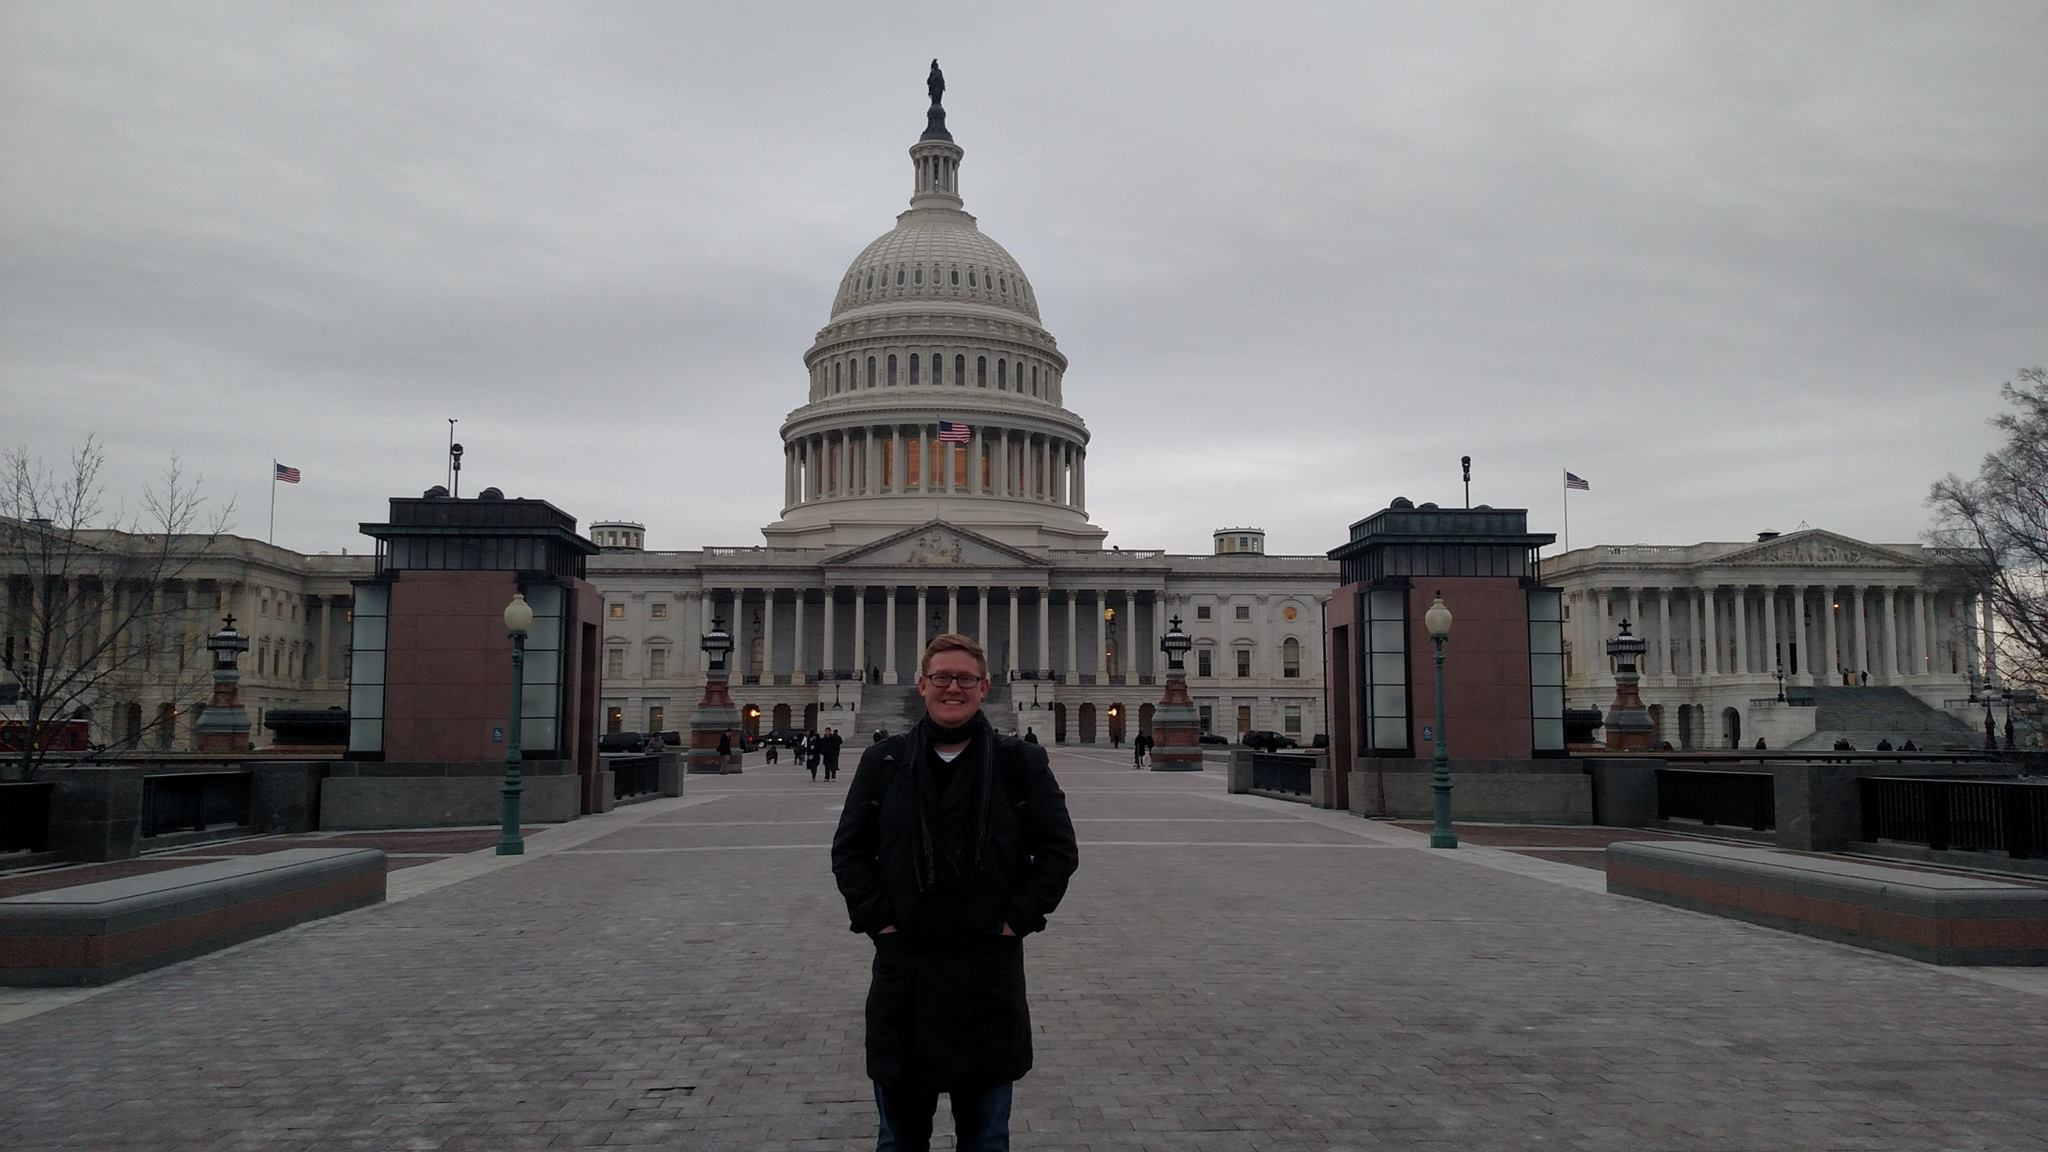 Jacob standing in front of the US Capitol.